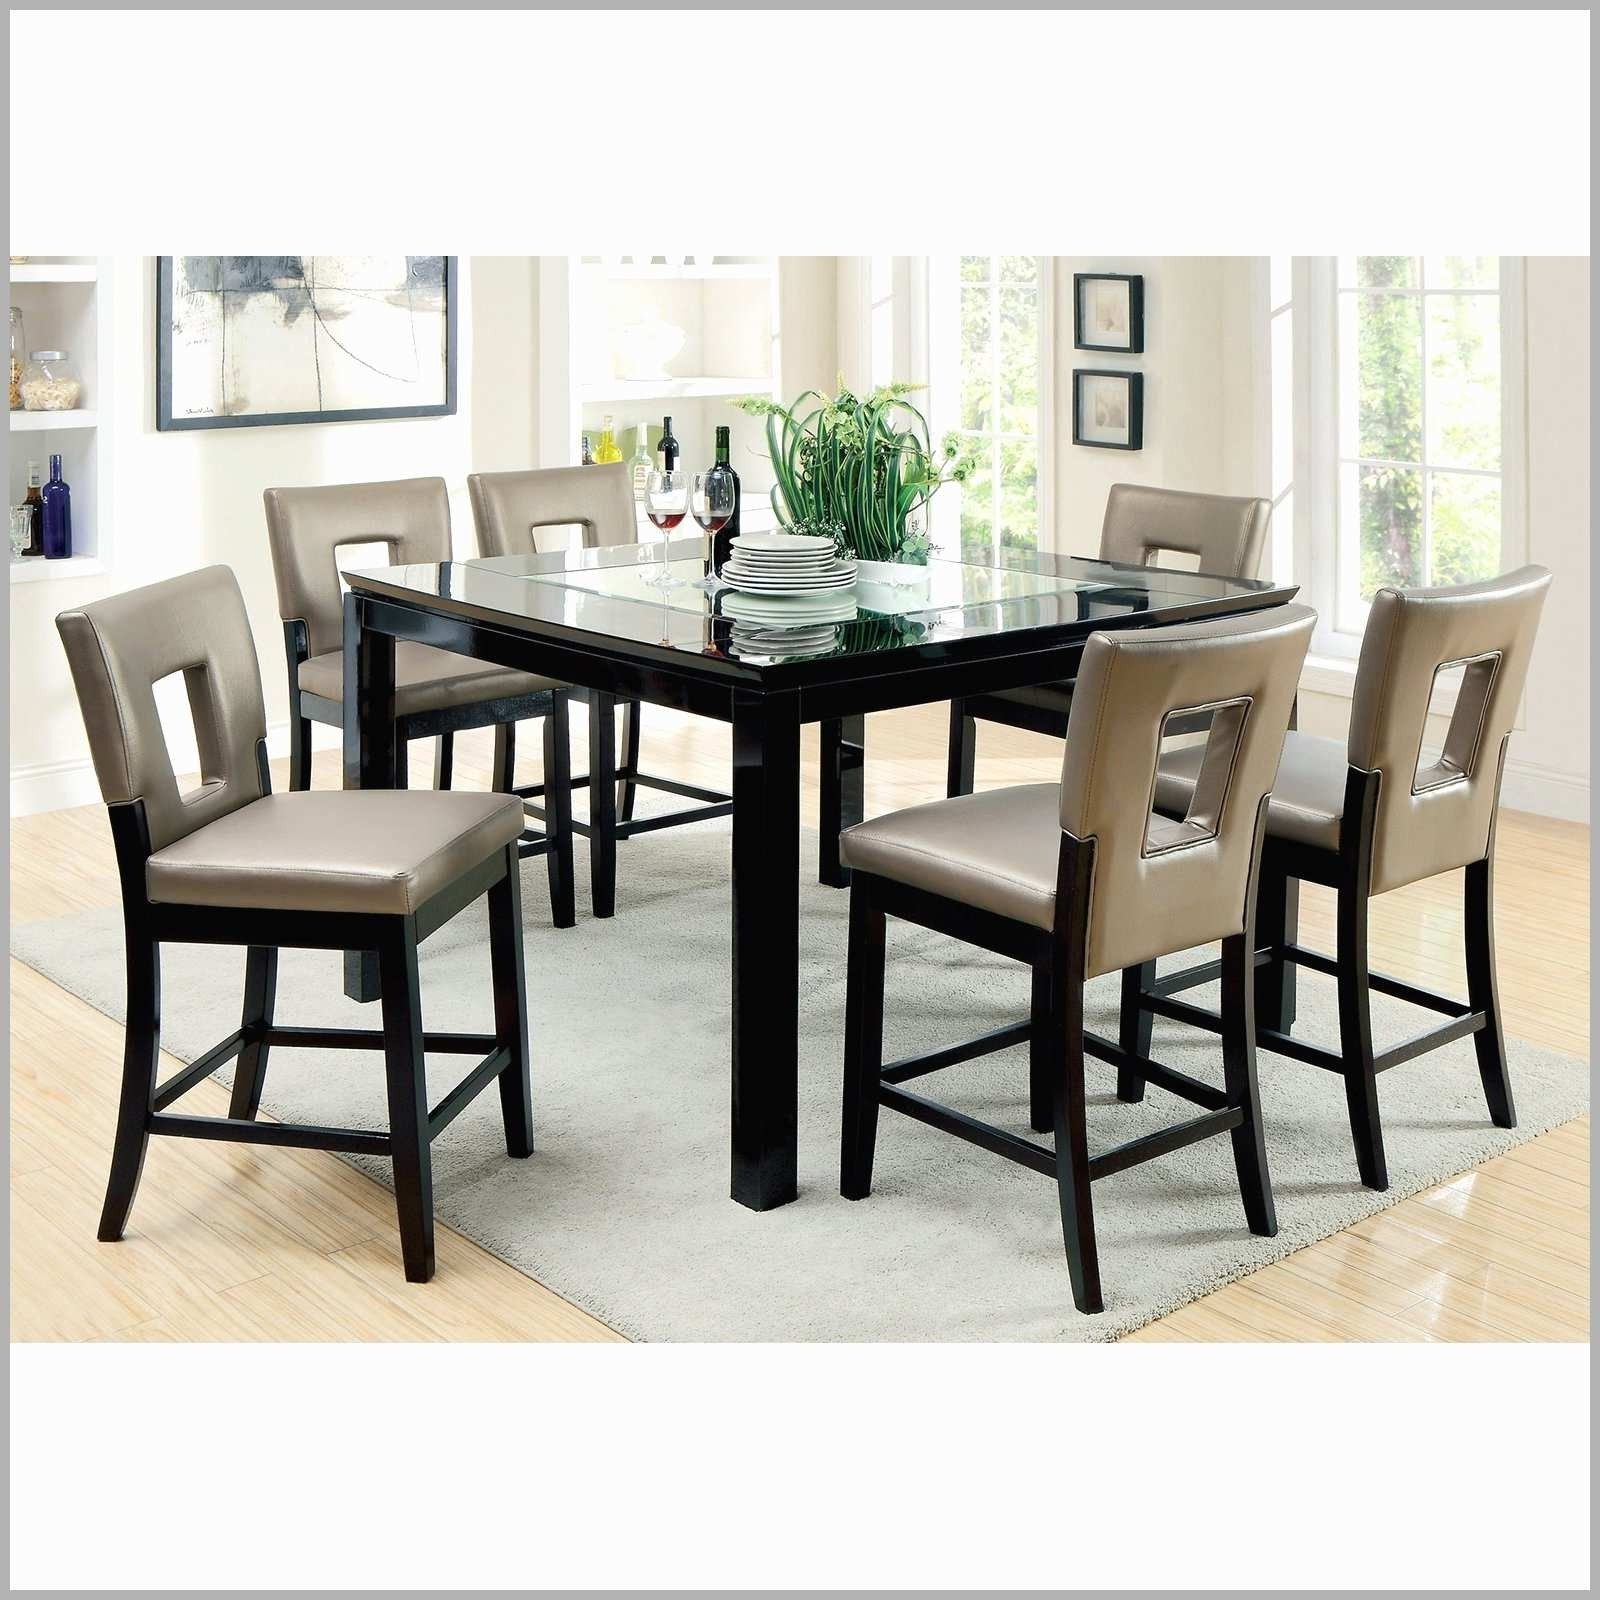 White High Gloss Extending Dining Table Luxury 8 Seater Dining Table Throughout Most Popular Extendable Dining Tables With 8 Seats (View 8 of 25)